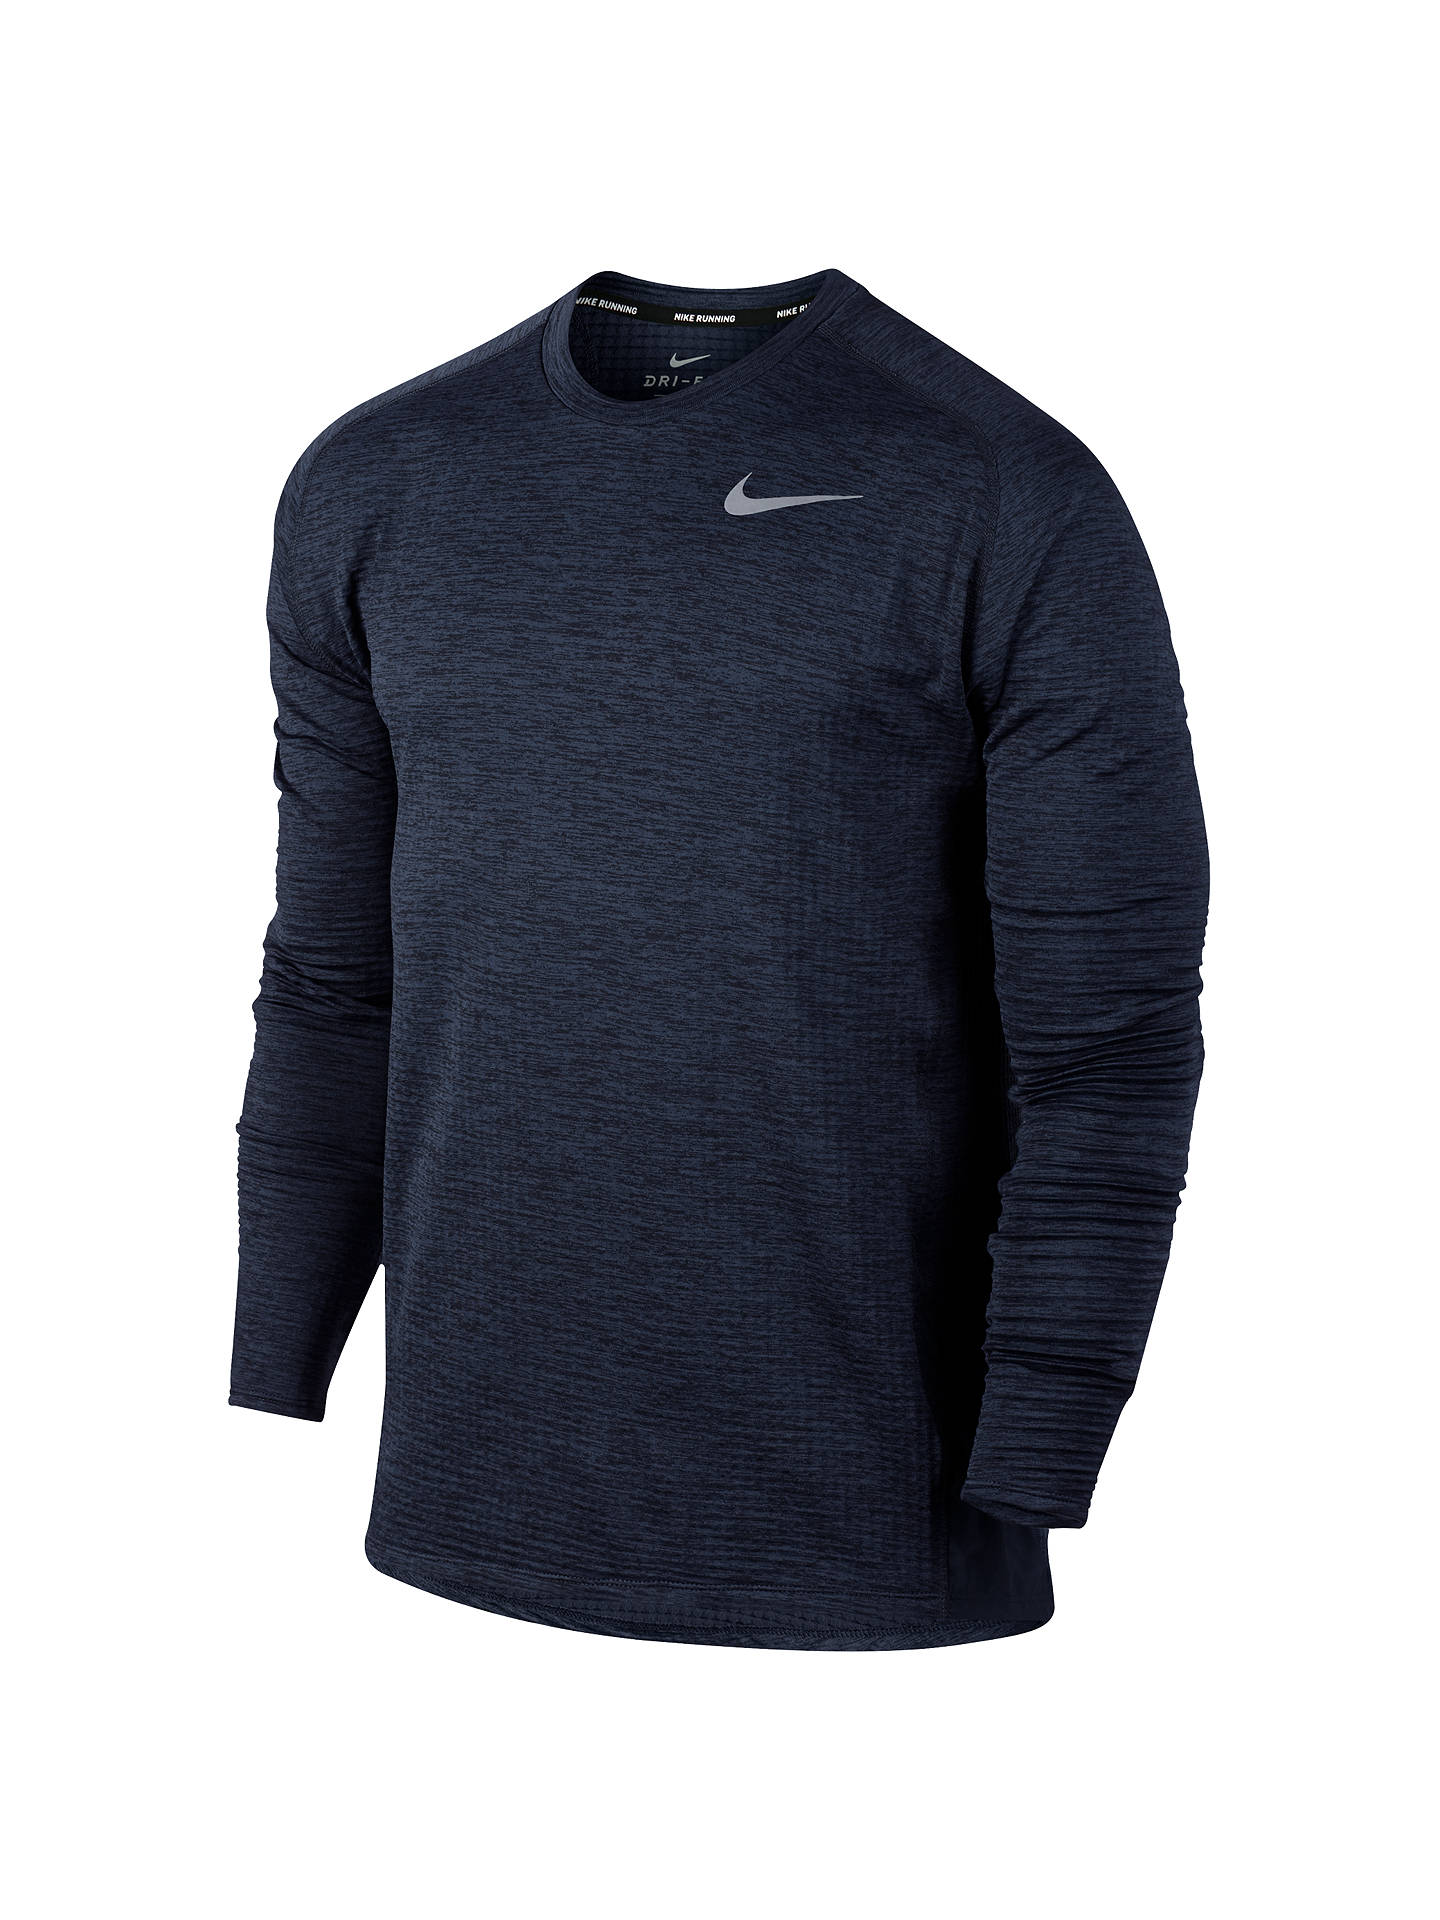 a55137eed Buy Nike Therma Sphere Element Running Top, Obsidian Black/Heather, S  Online at ...